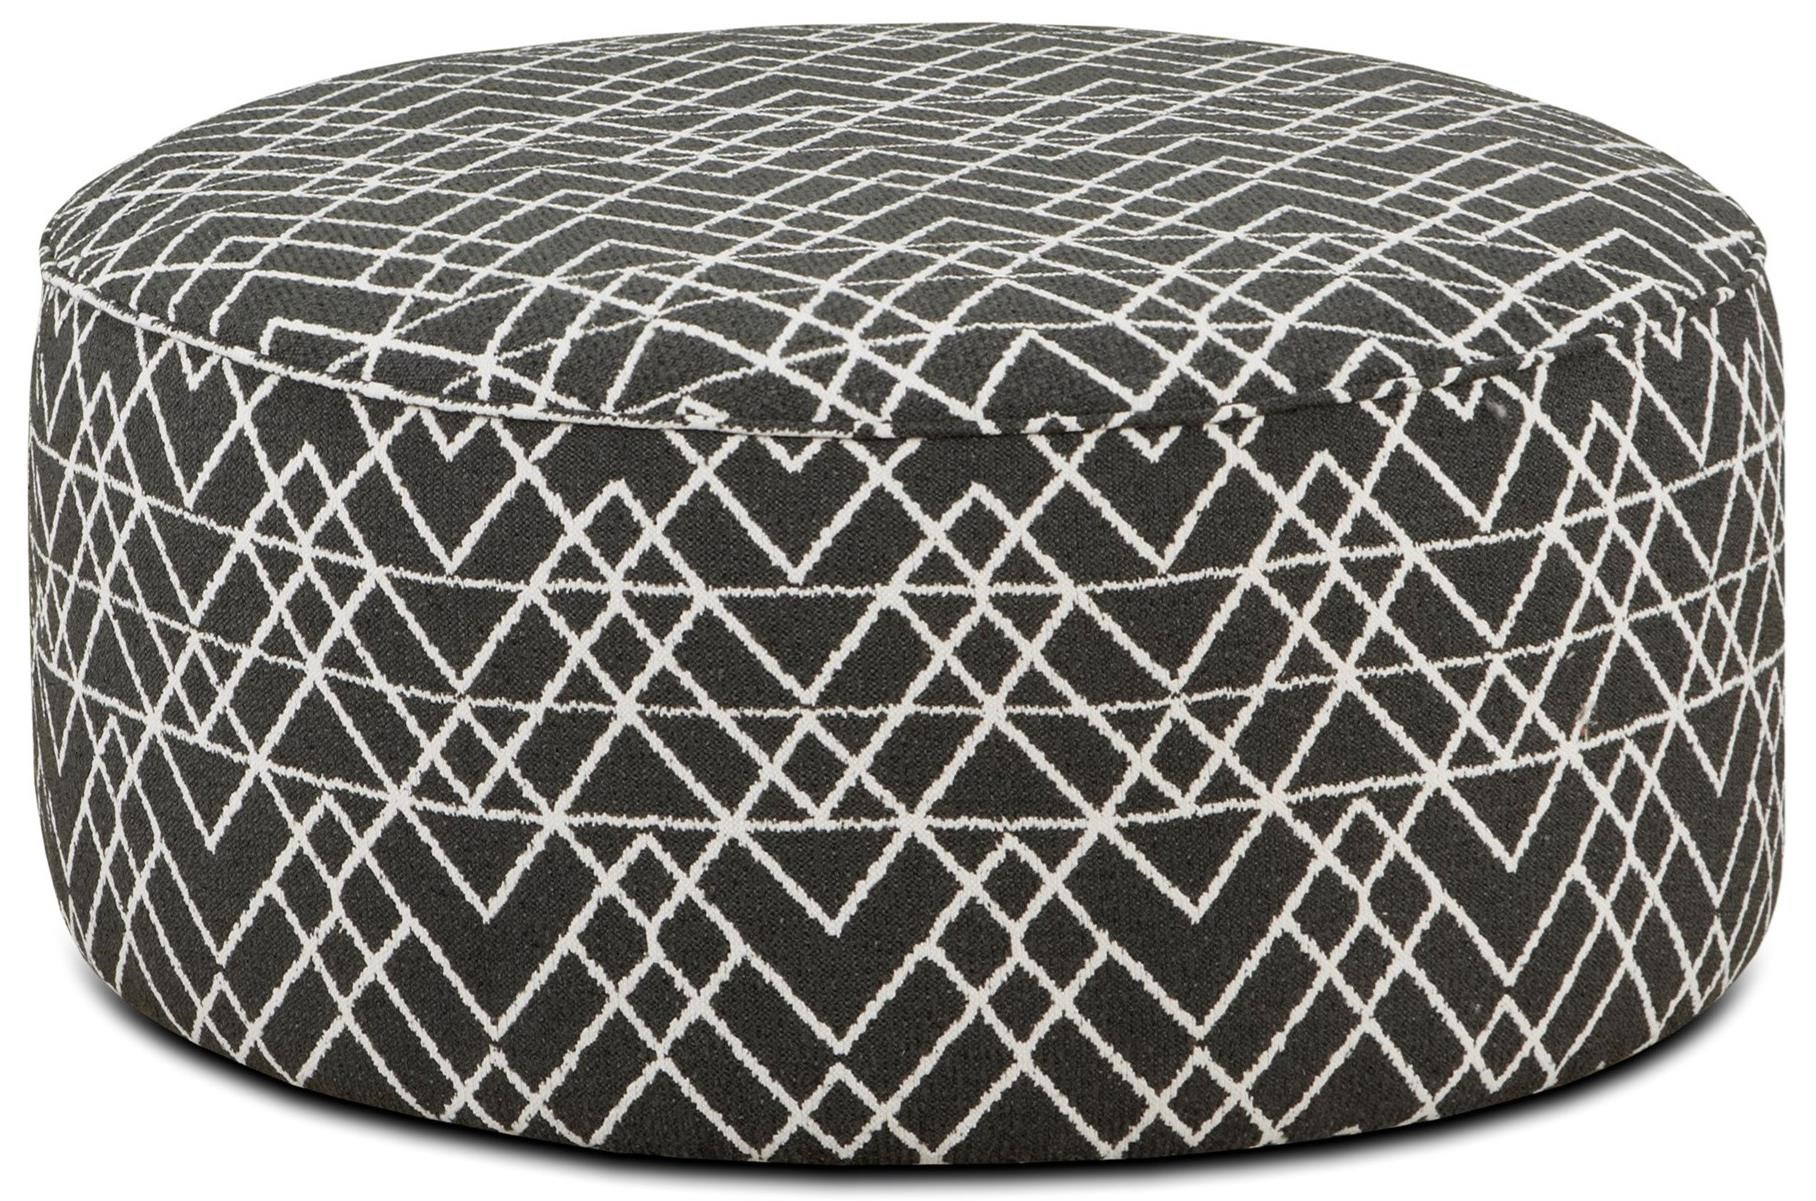 140 Cocktail Ottoman by Fusion Furniture at Wilcox Furniture